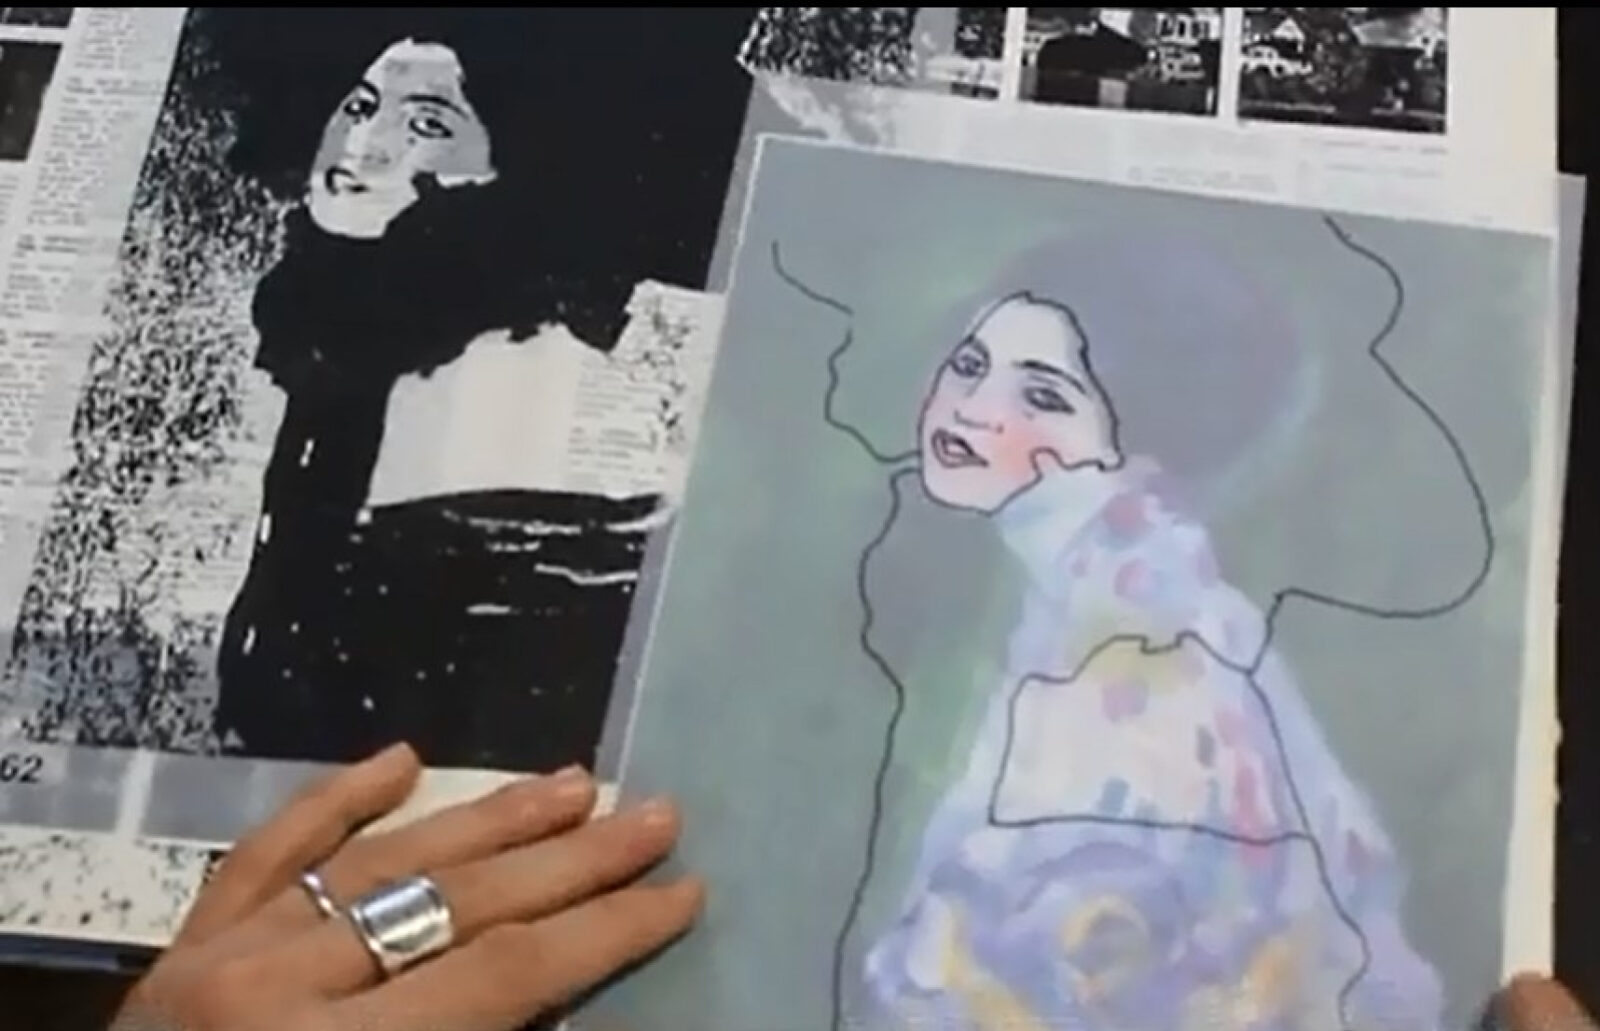 Klimt's painting was found in a hiding place inside the wall of an Italian gallery